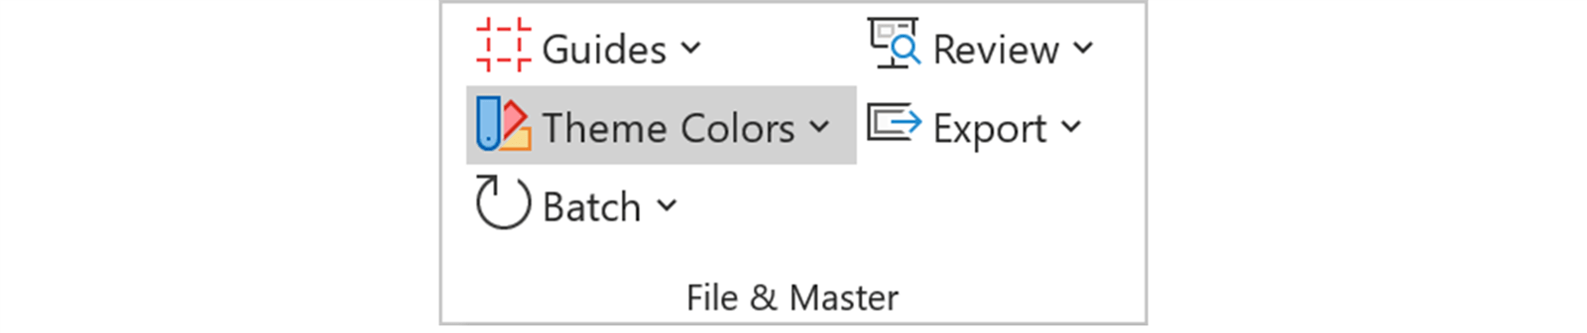 Screenshot of Theme colors feature in the BrightSlide tab